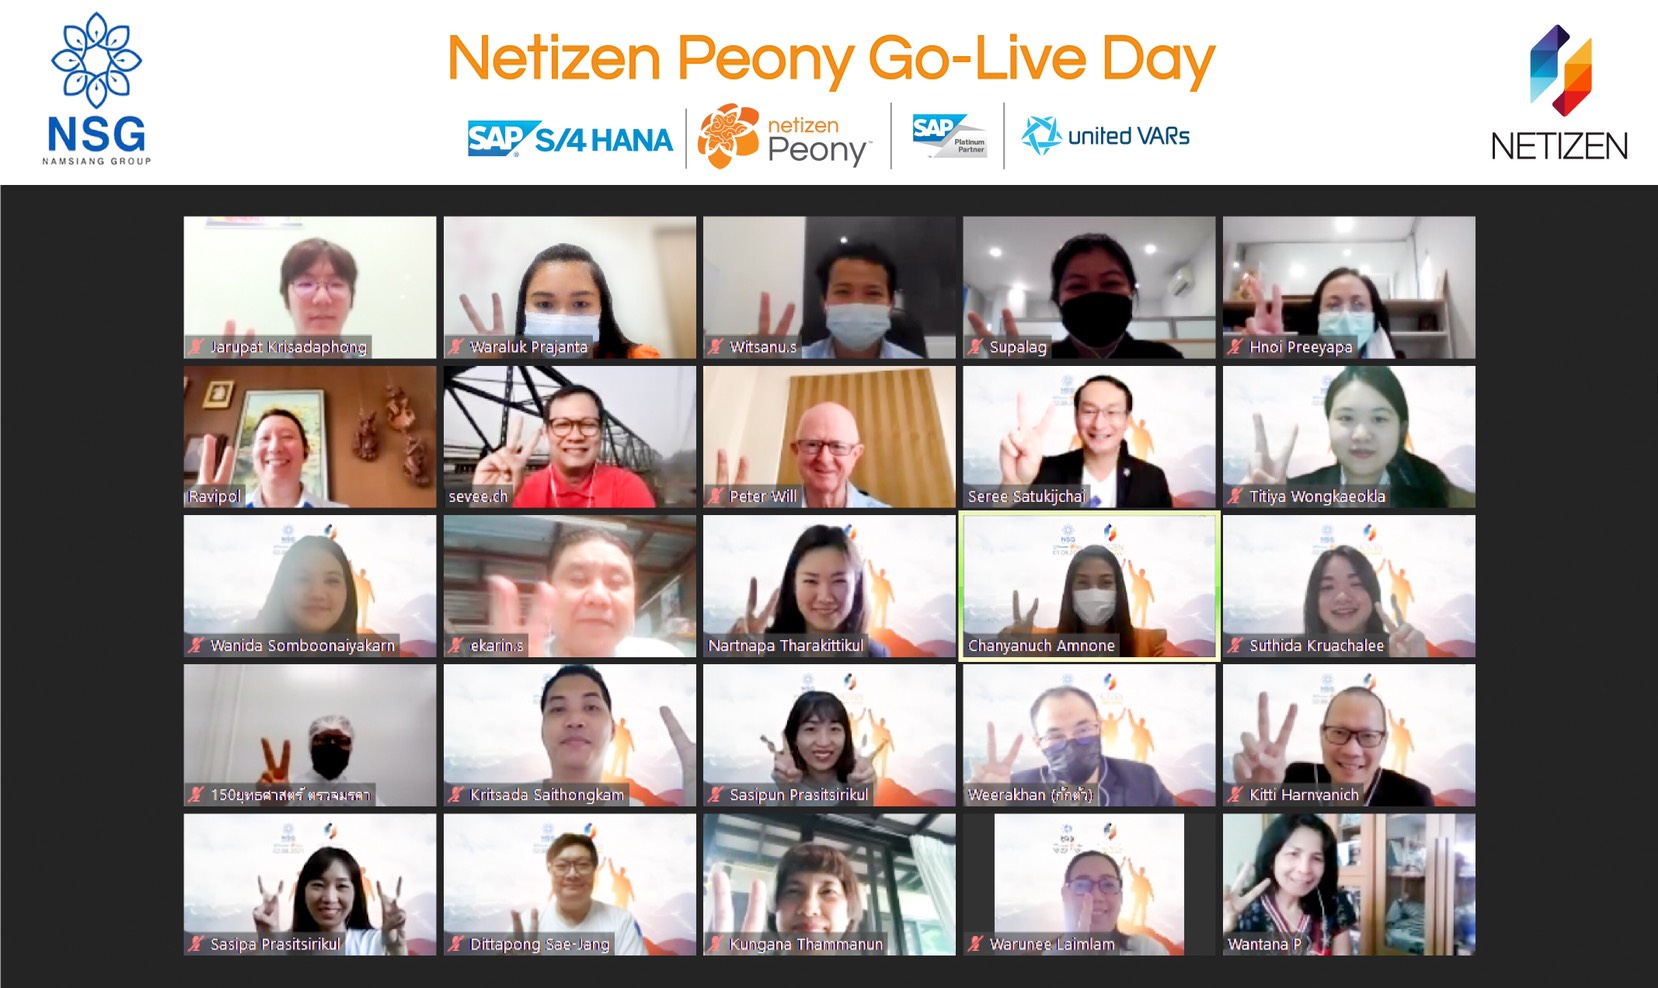 Netizen organized with the first online Go Live event to celebrate Peony Day for Namsiang Group